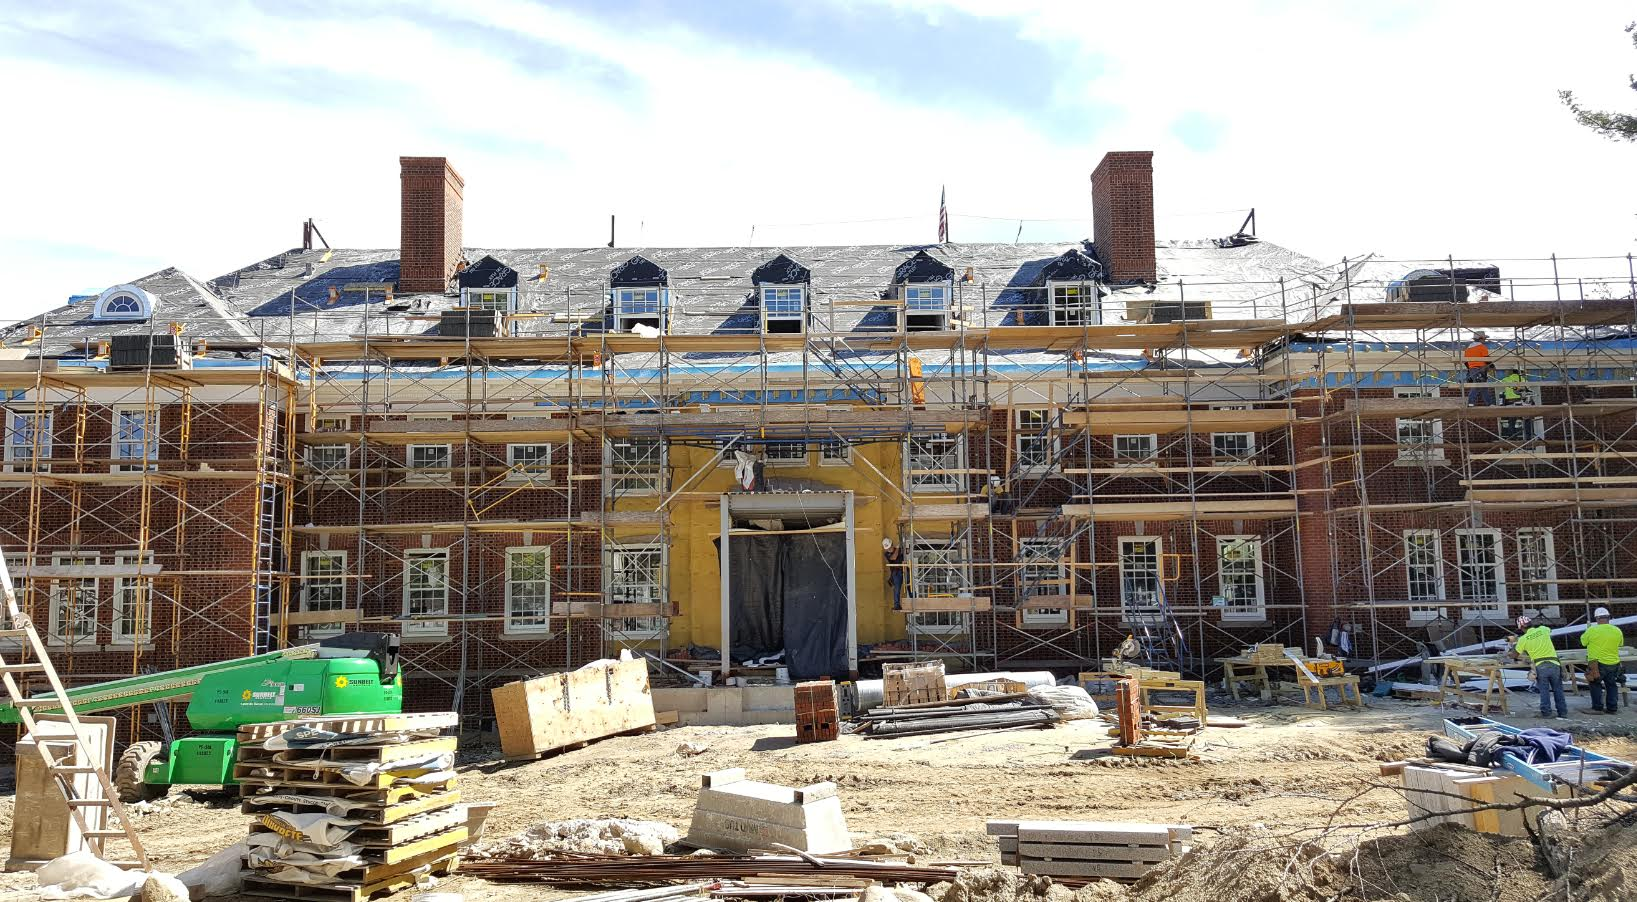 Landry House, nearing the completion of the bricking process, in early May 2016.